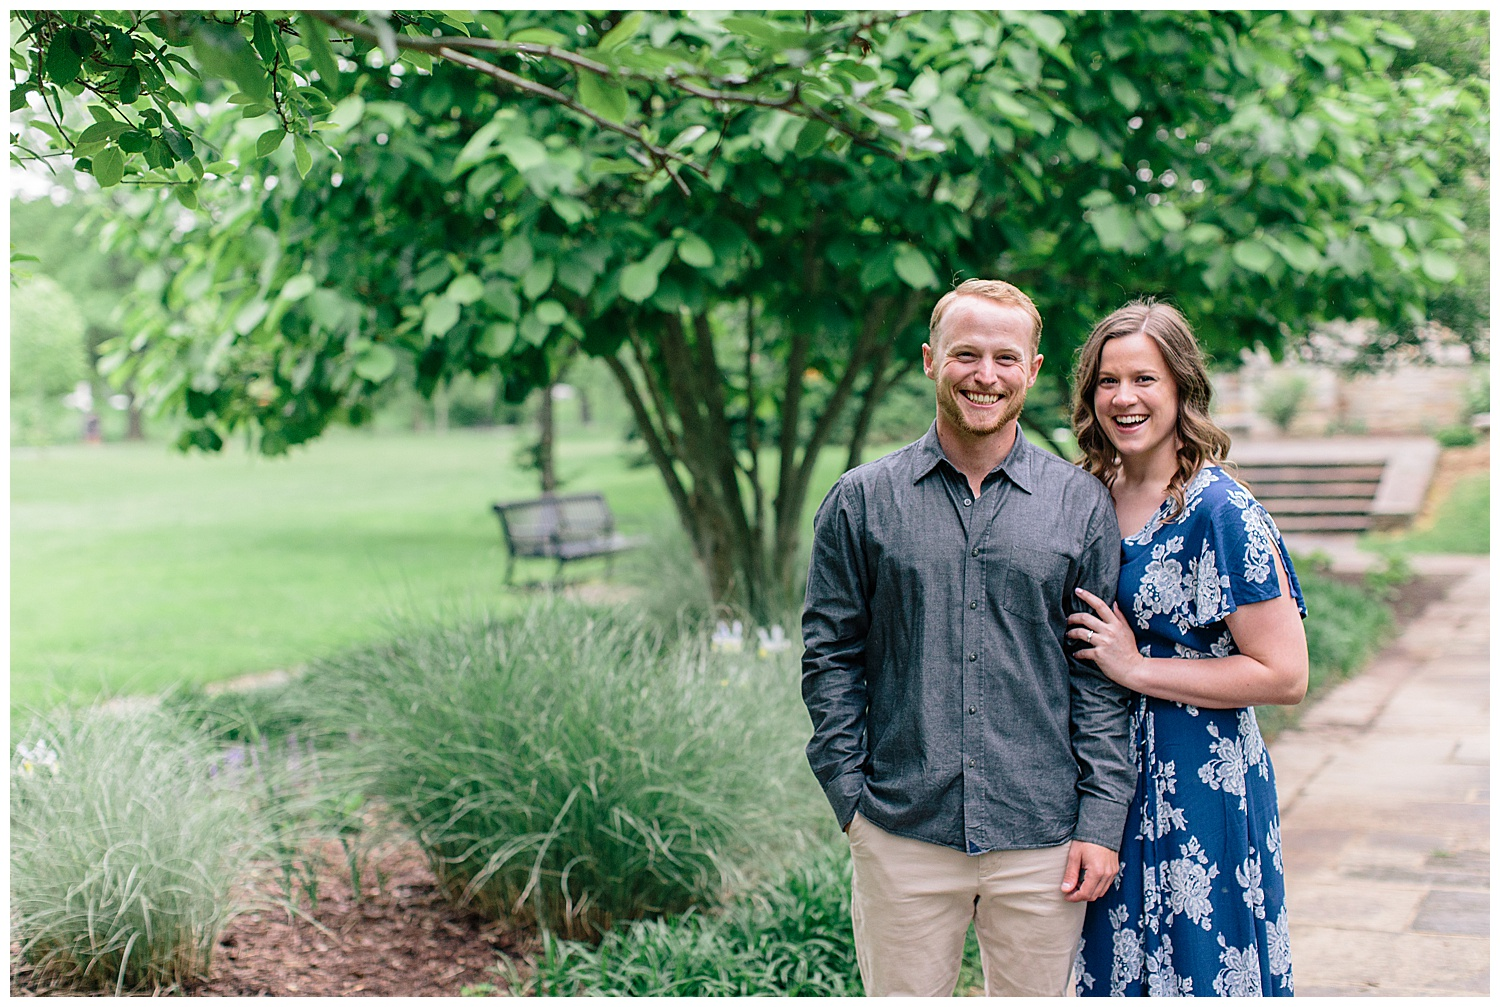 emily-belson-photography-frederick-md-engagement-14.jpg